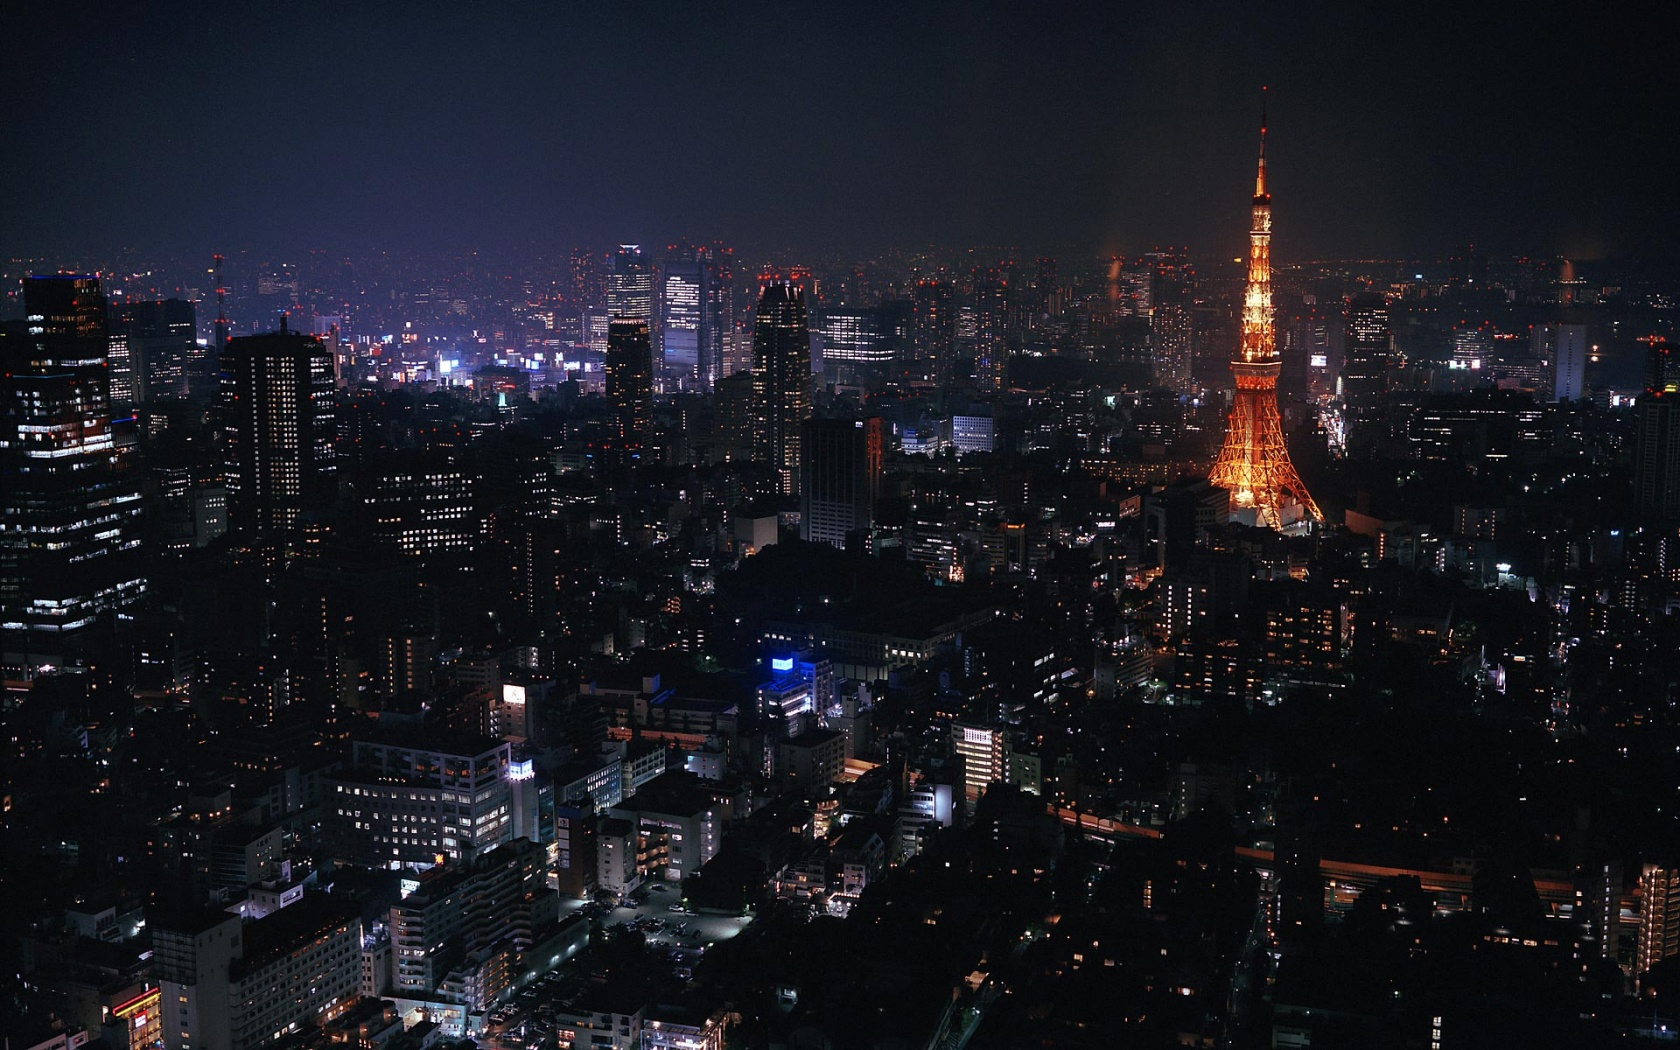 Tokyo By Night Wallpapers HD Wallpapers 1680x1050